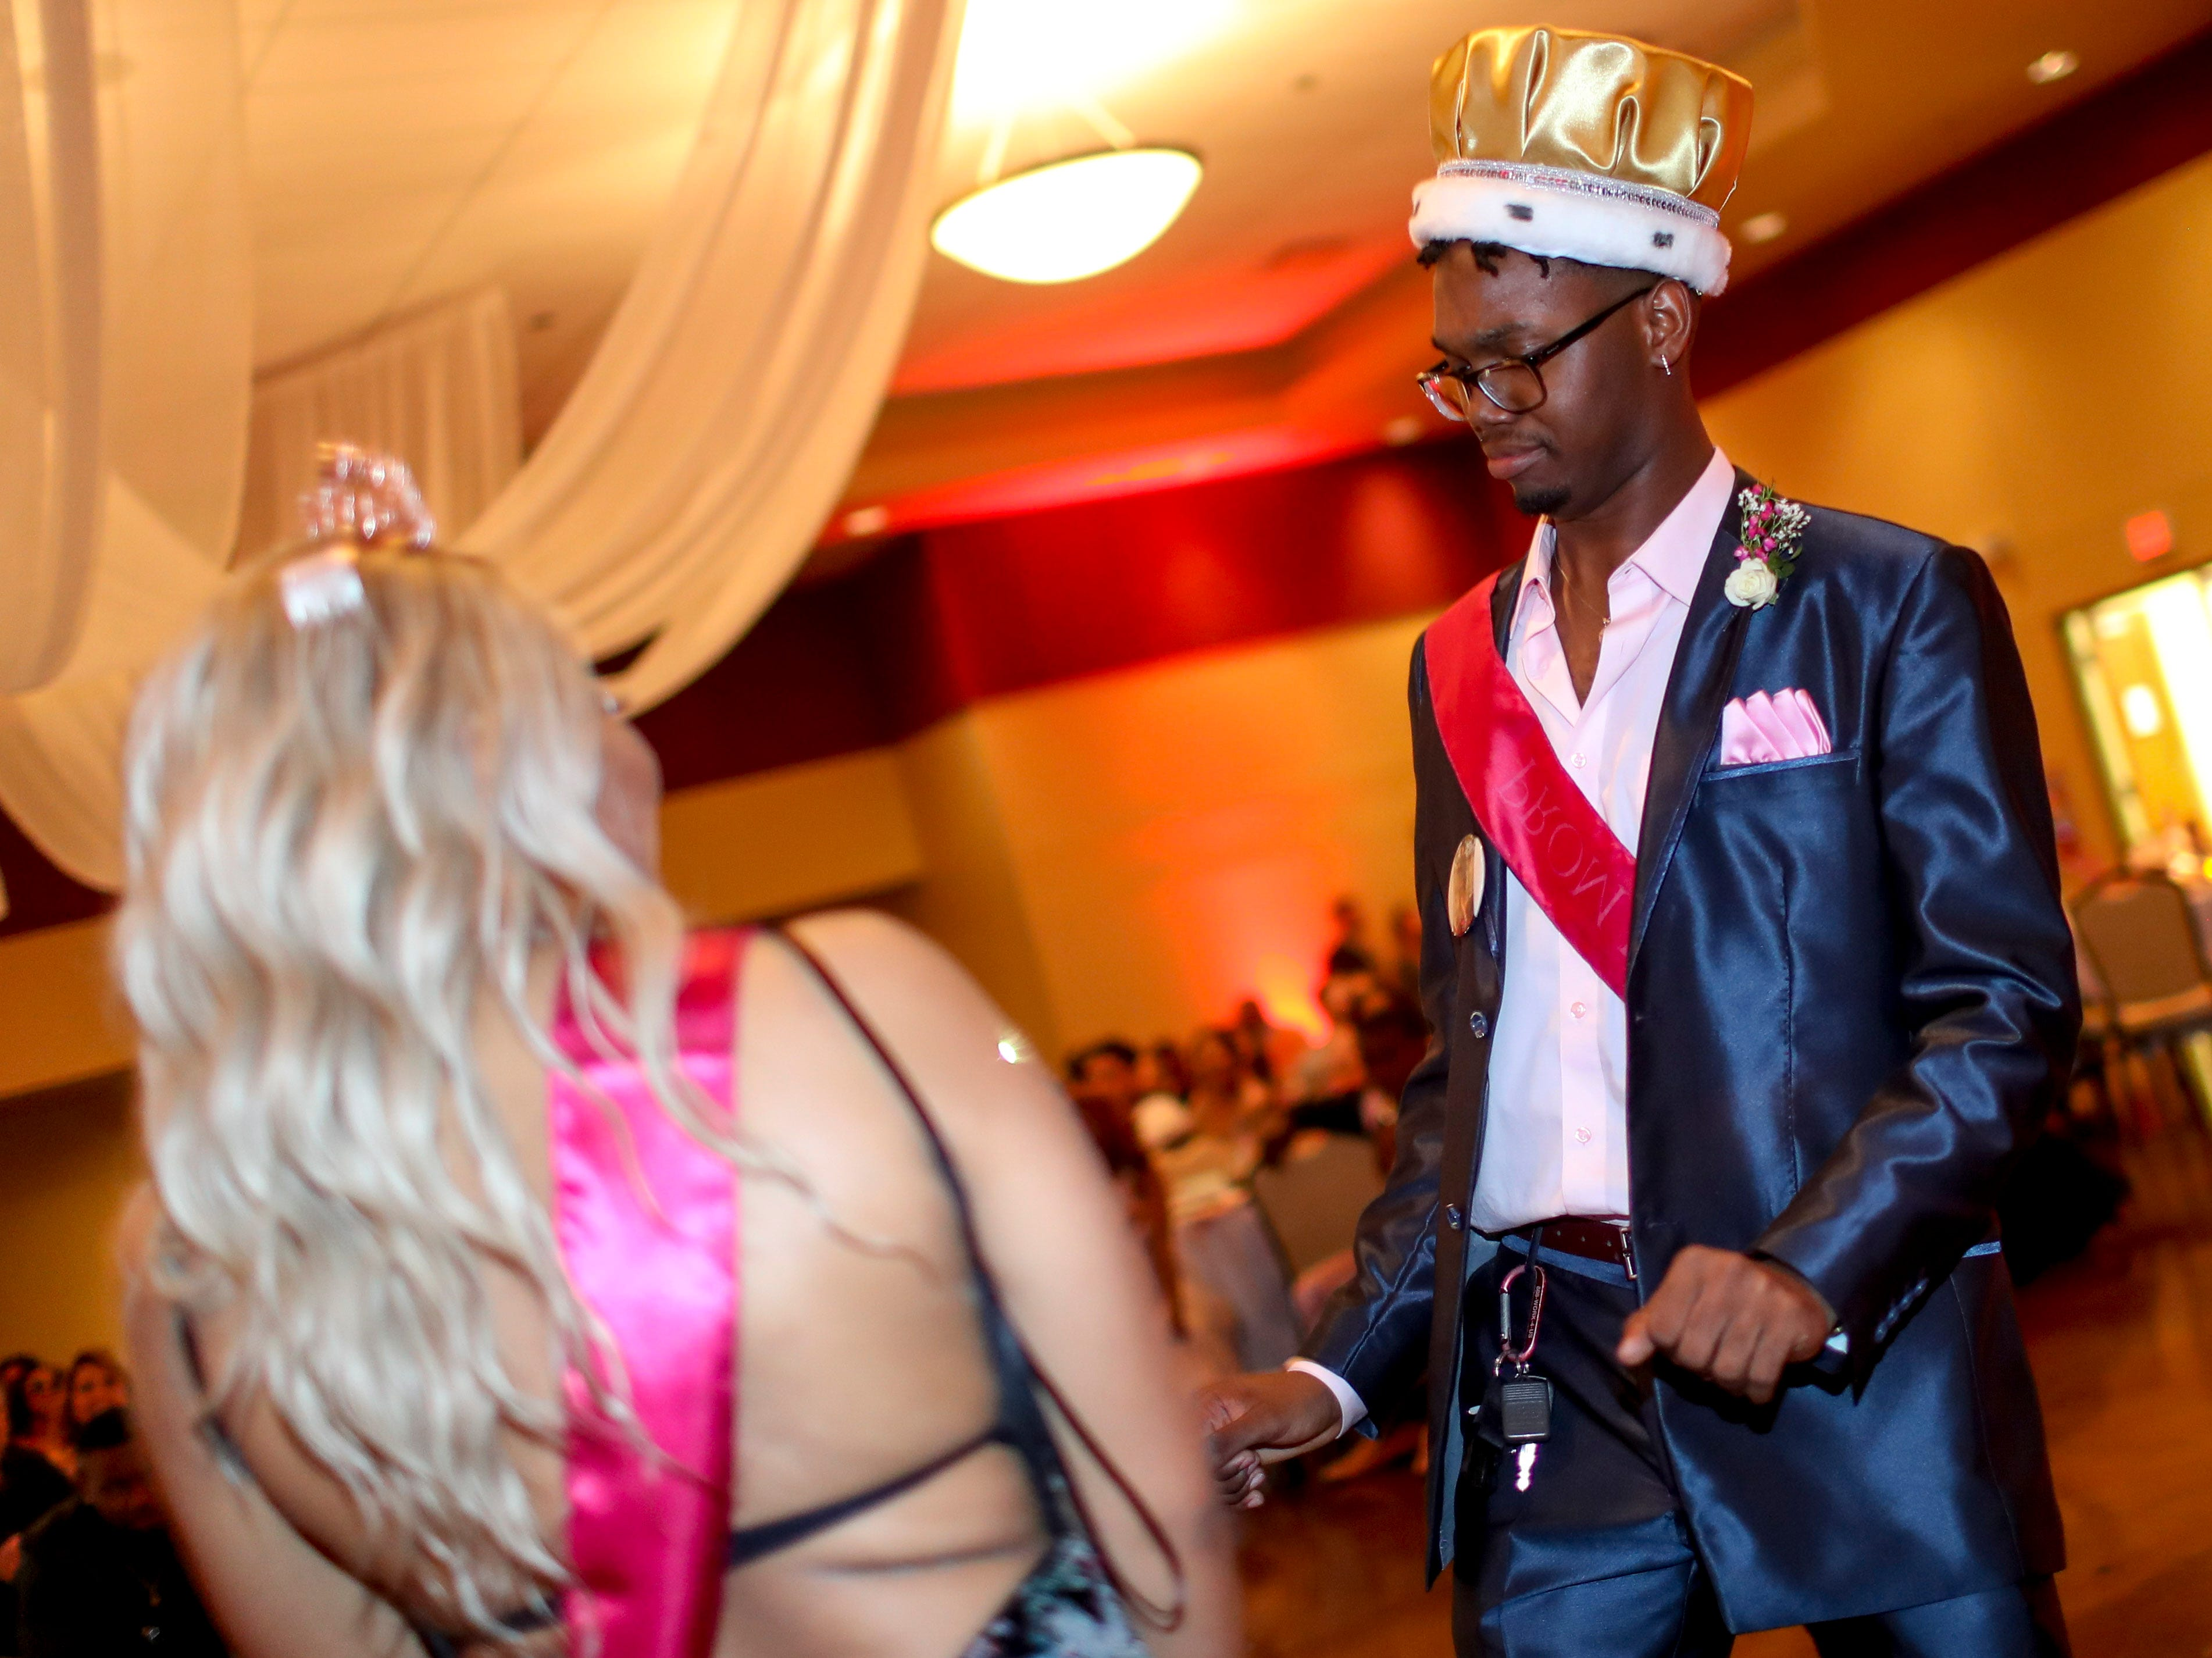 """Prom king Kaos Armstrong, right, dances with prom queen Adannis Delis-Luna as hundreds of students from Kenwood High School celebrated their 2019 prom themed """"Cherish the Moment"""" at Valor Hall in Oak Grove, KY., on Saturday, May 4, 2019."""